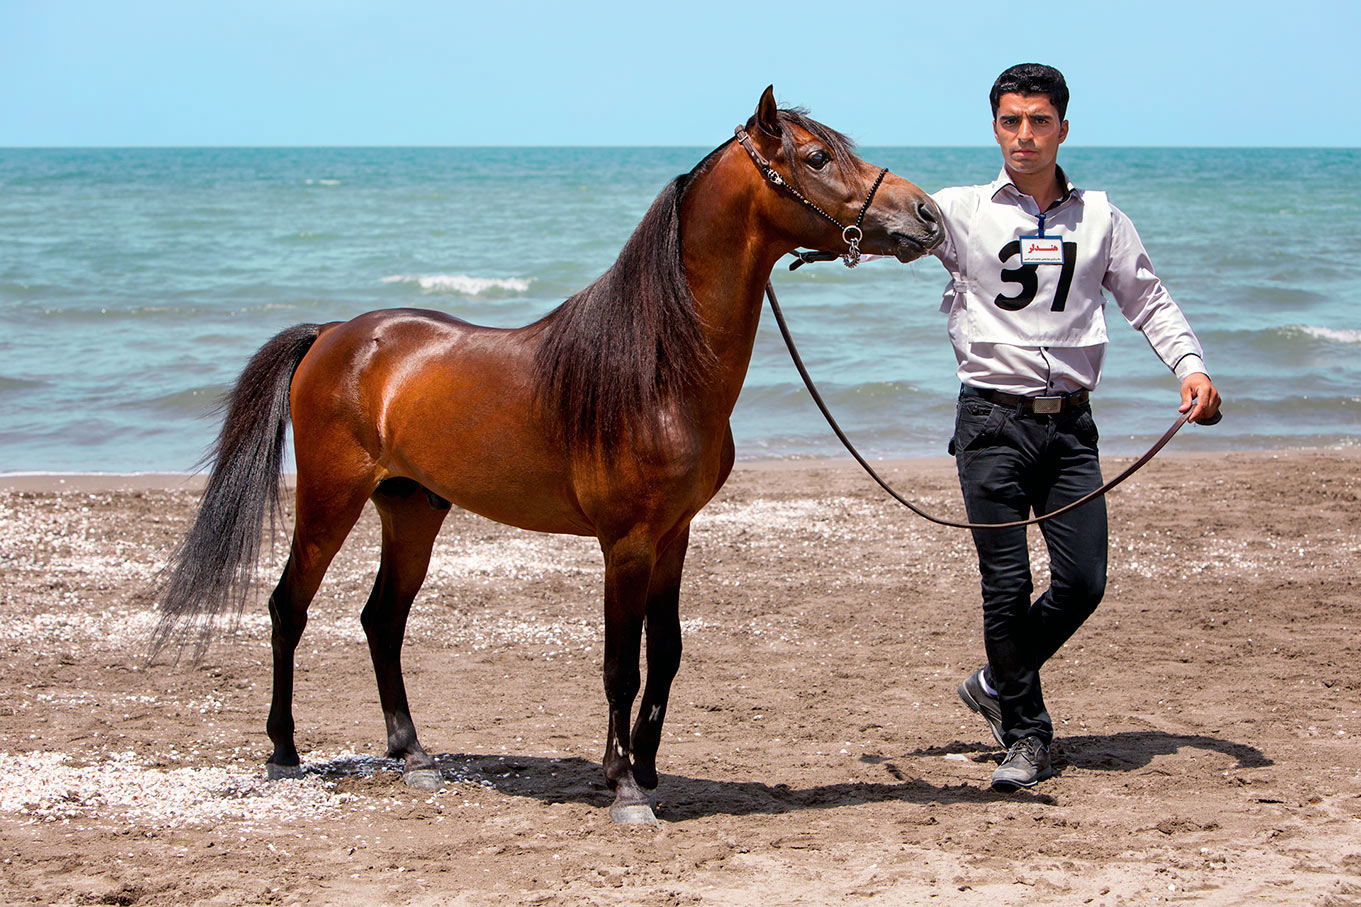 Champion Caspian Stallion in Iran